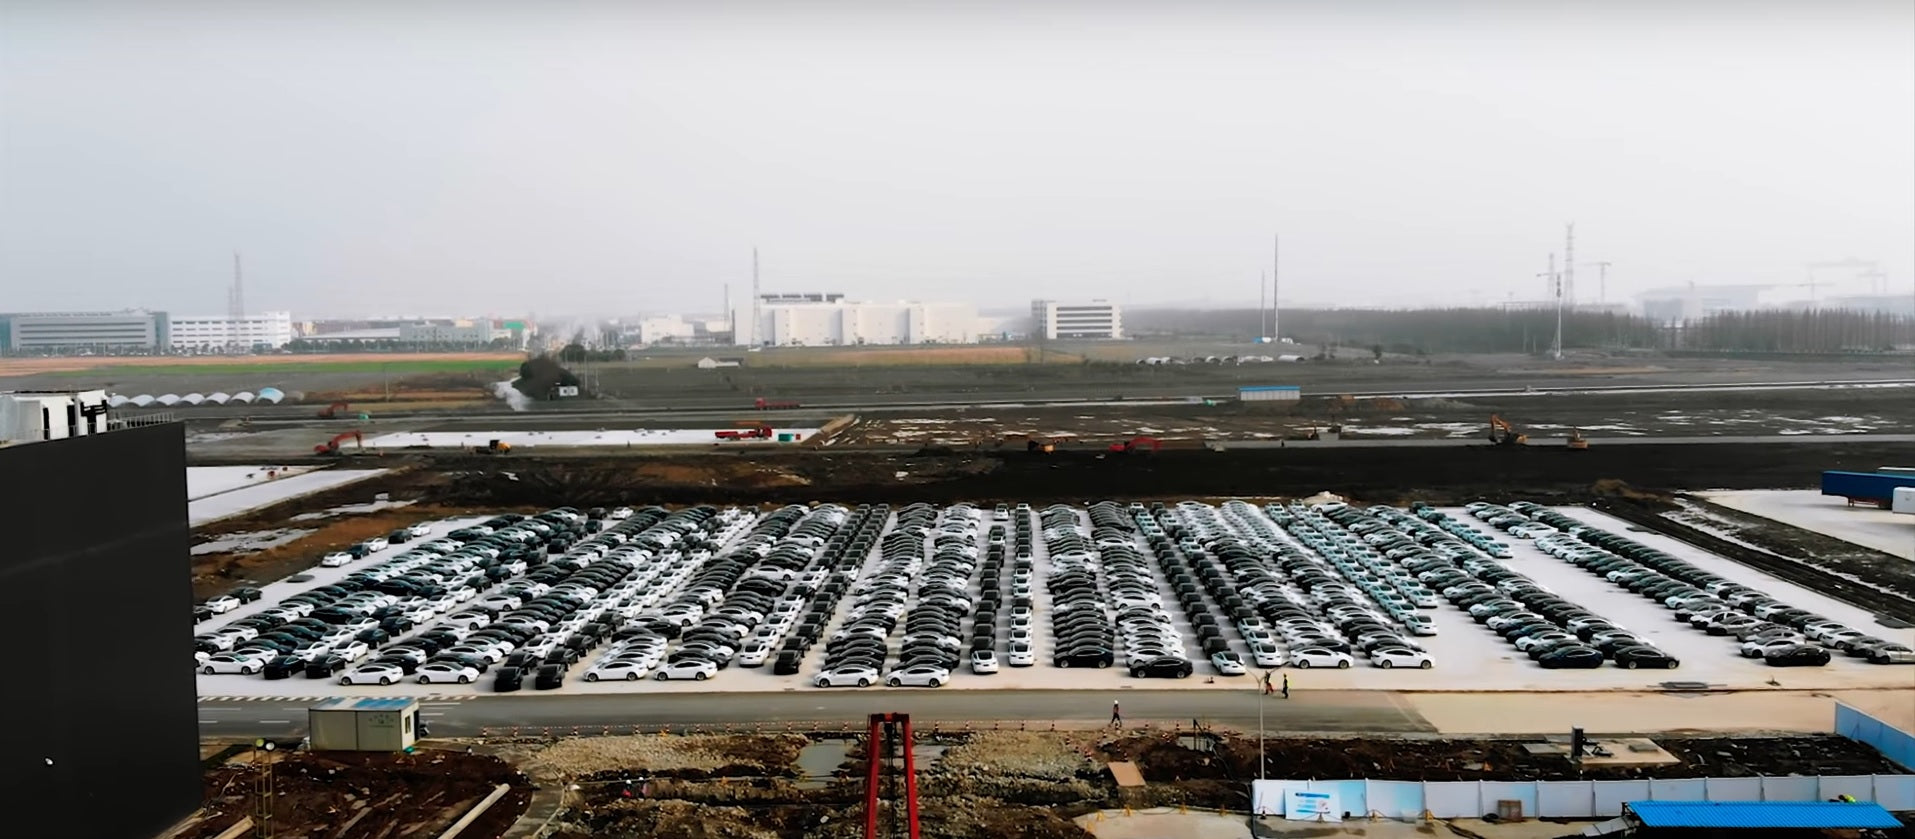 Tesla is Ramping up Made-in-China Model 3: Shanghai Gigafactory 3's parking lot is overflowing [Video]